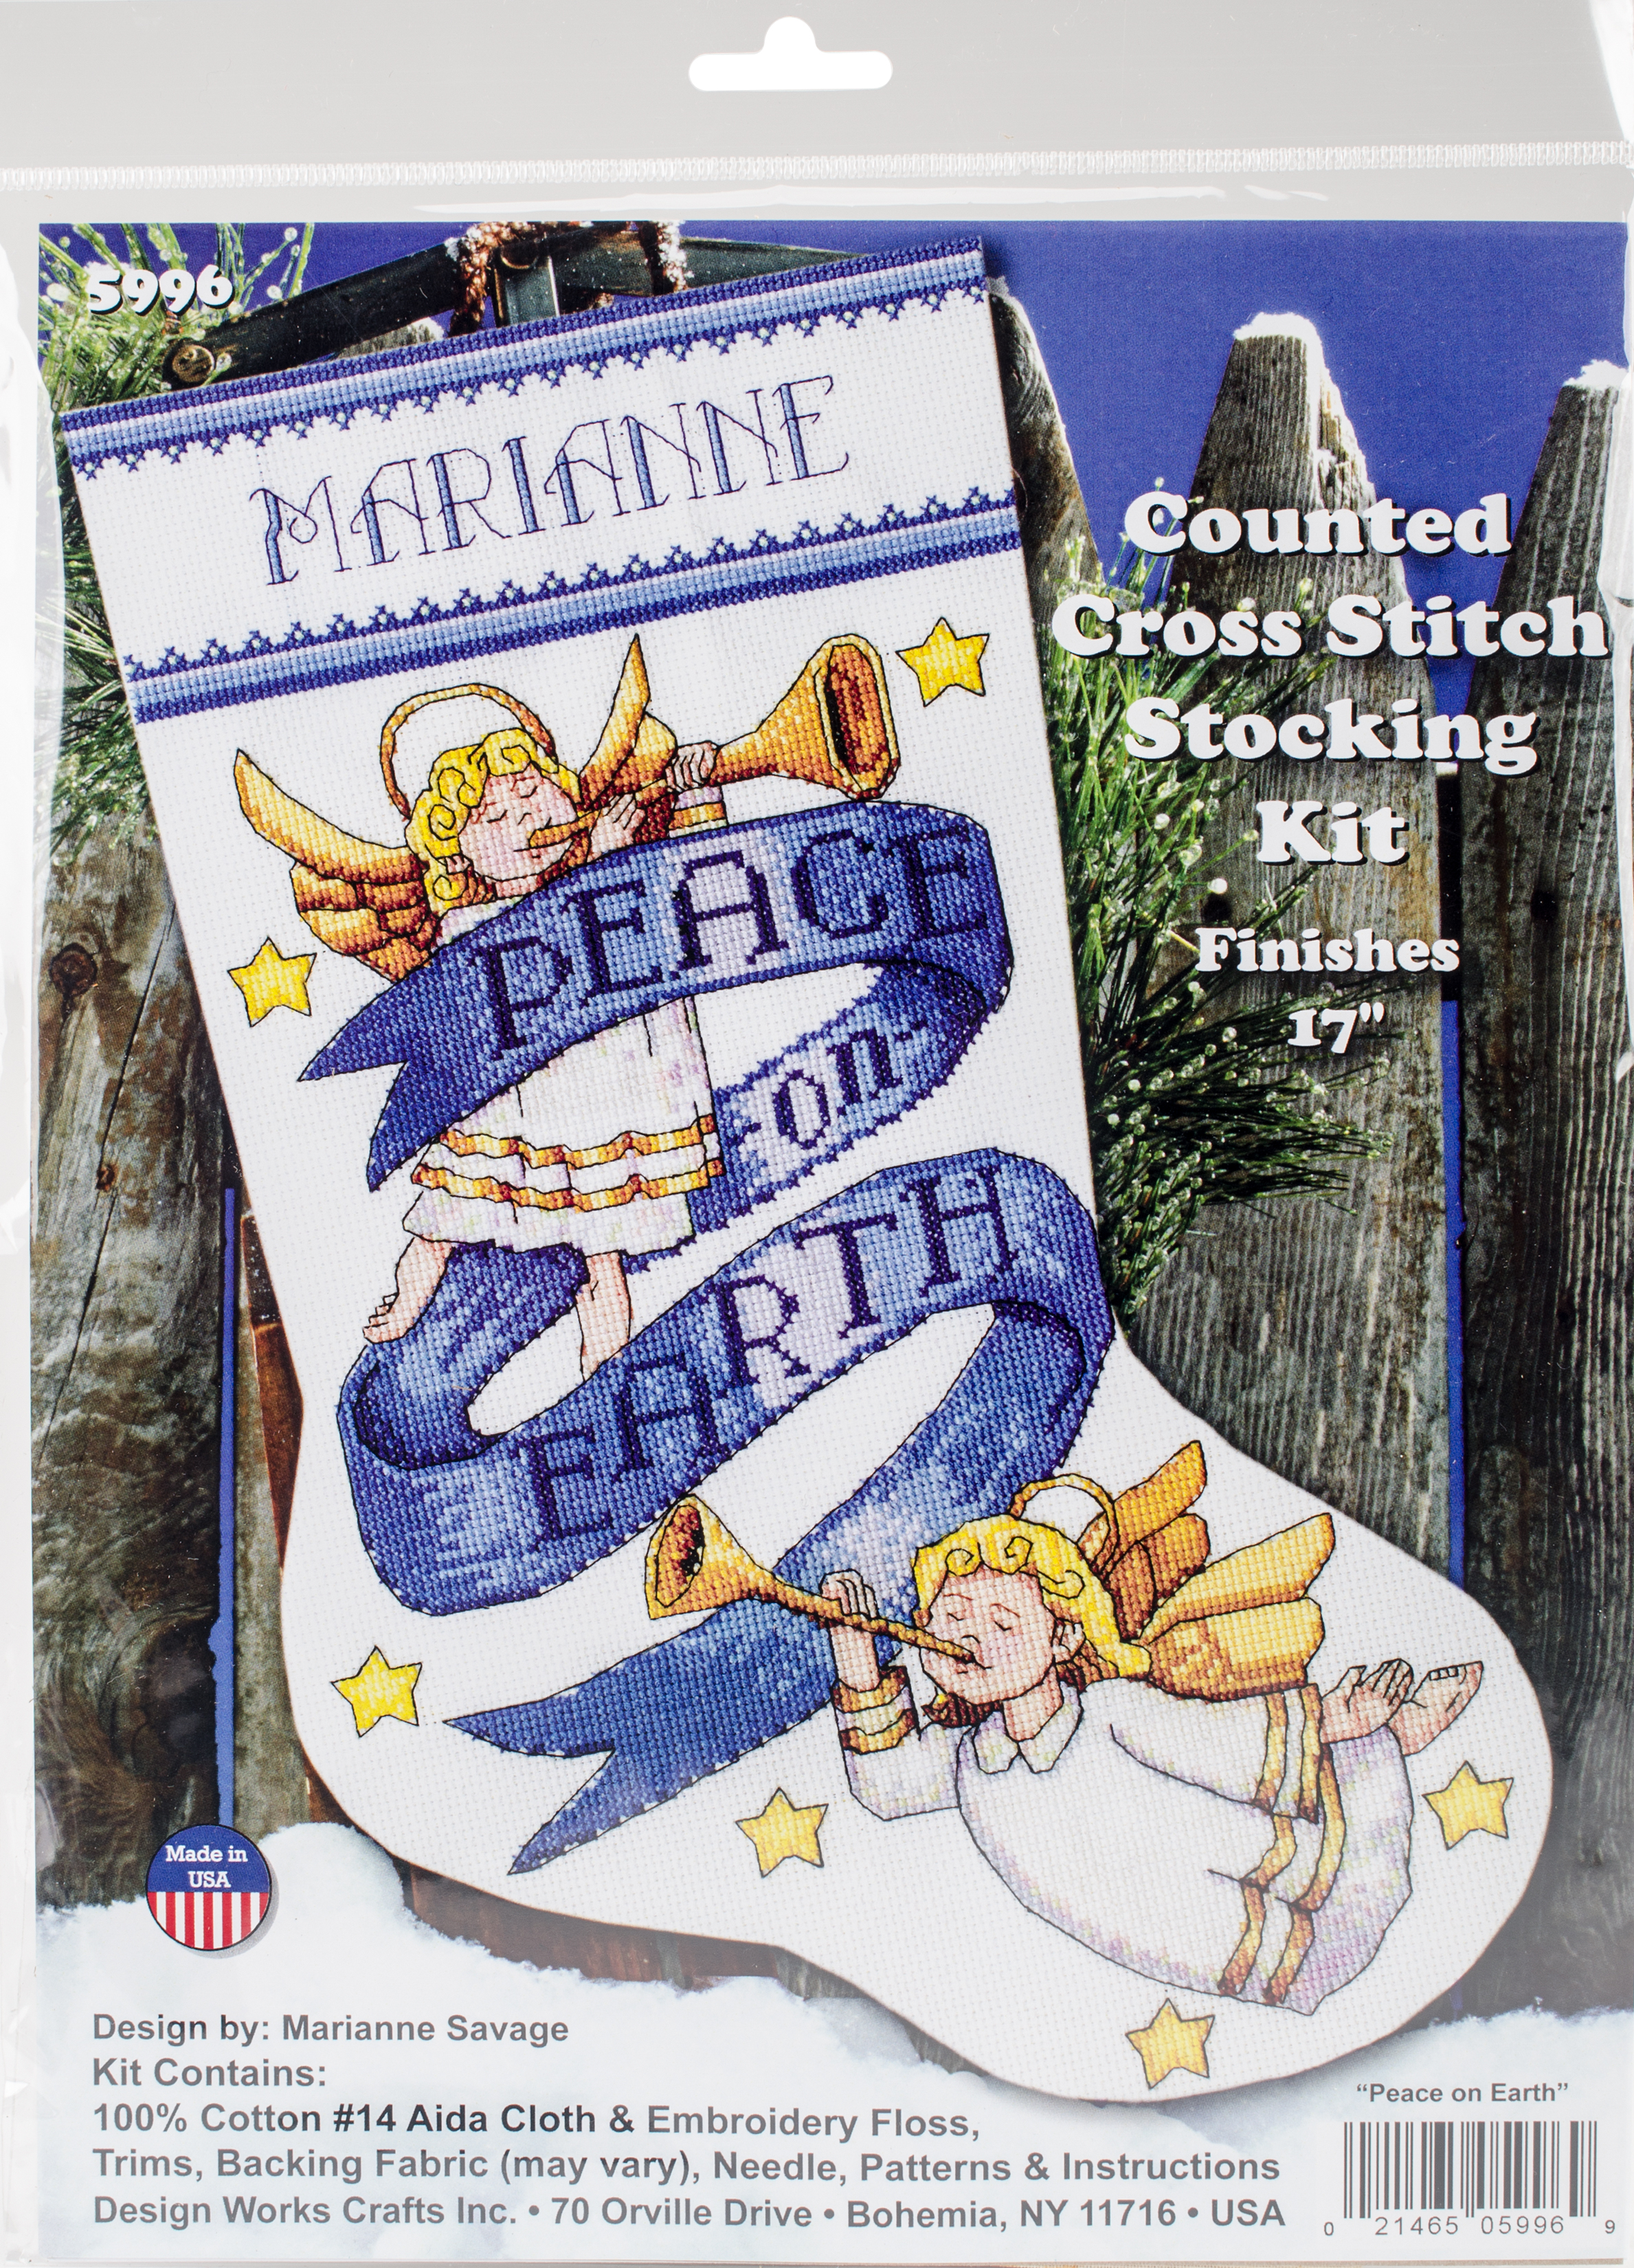 Peace on Earth Counted Cross Stitch Stocking Kit